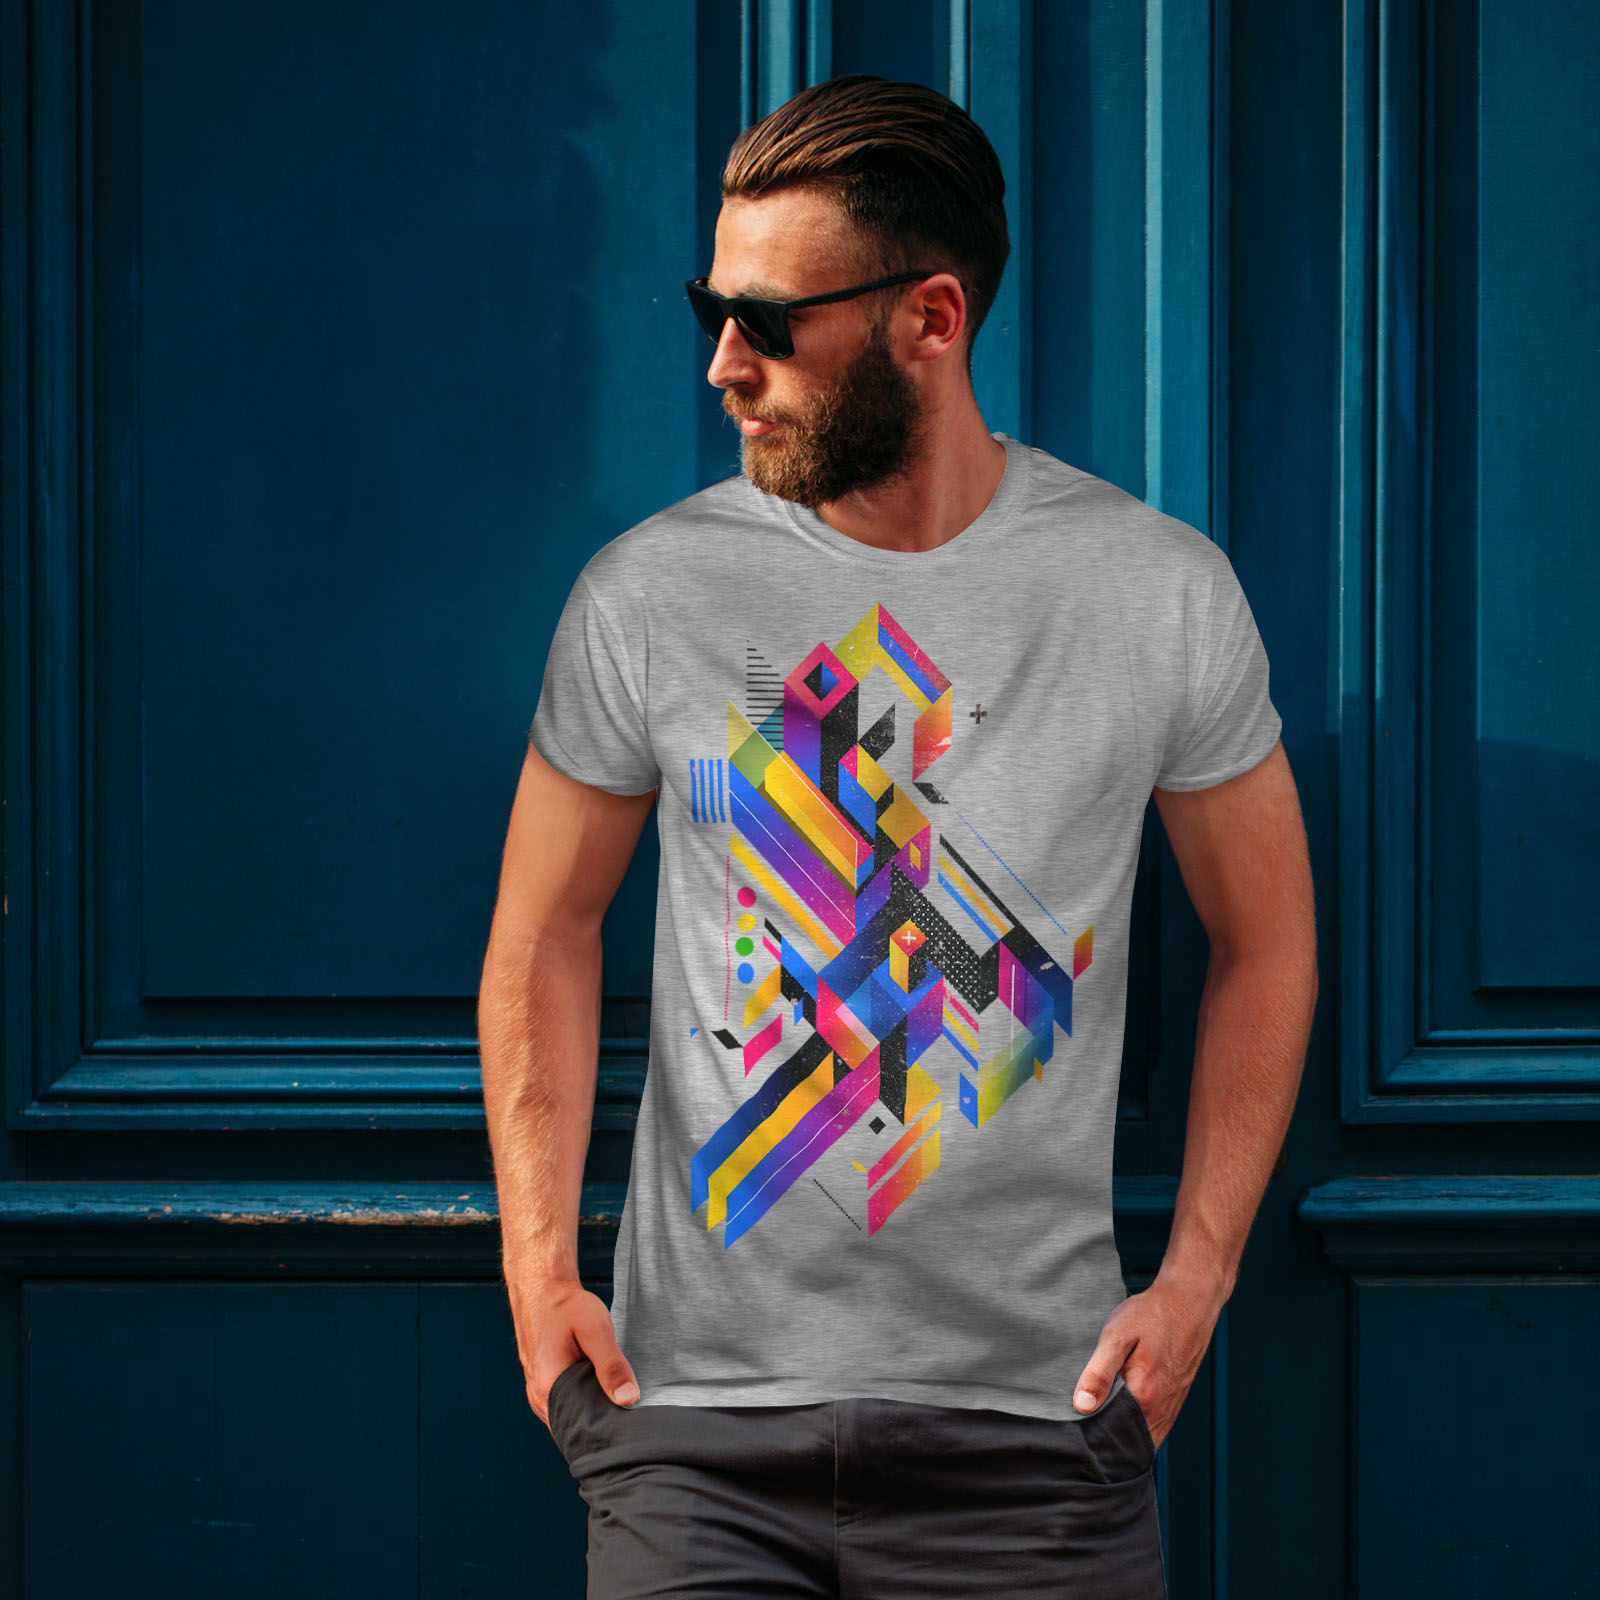 Wellcoda-Abstract-Maze-T-shirt-homme-Labyrinthe-conception-graphique-imprime-Tee miniature 16